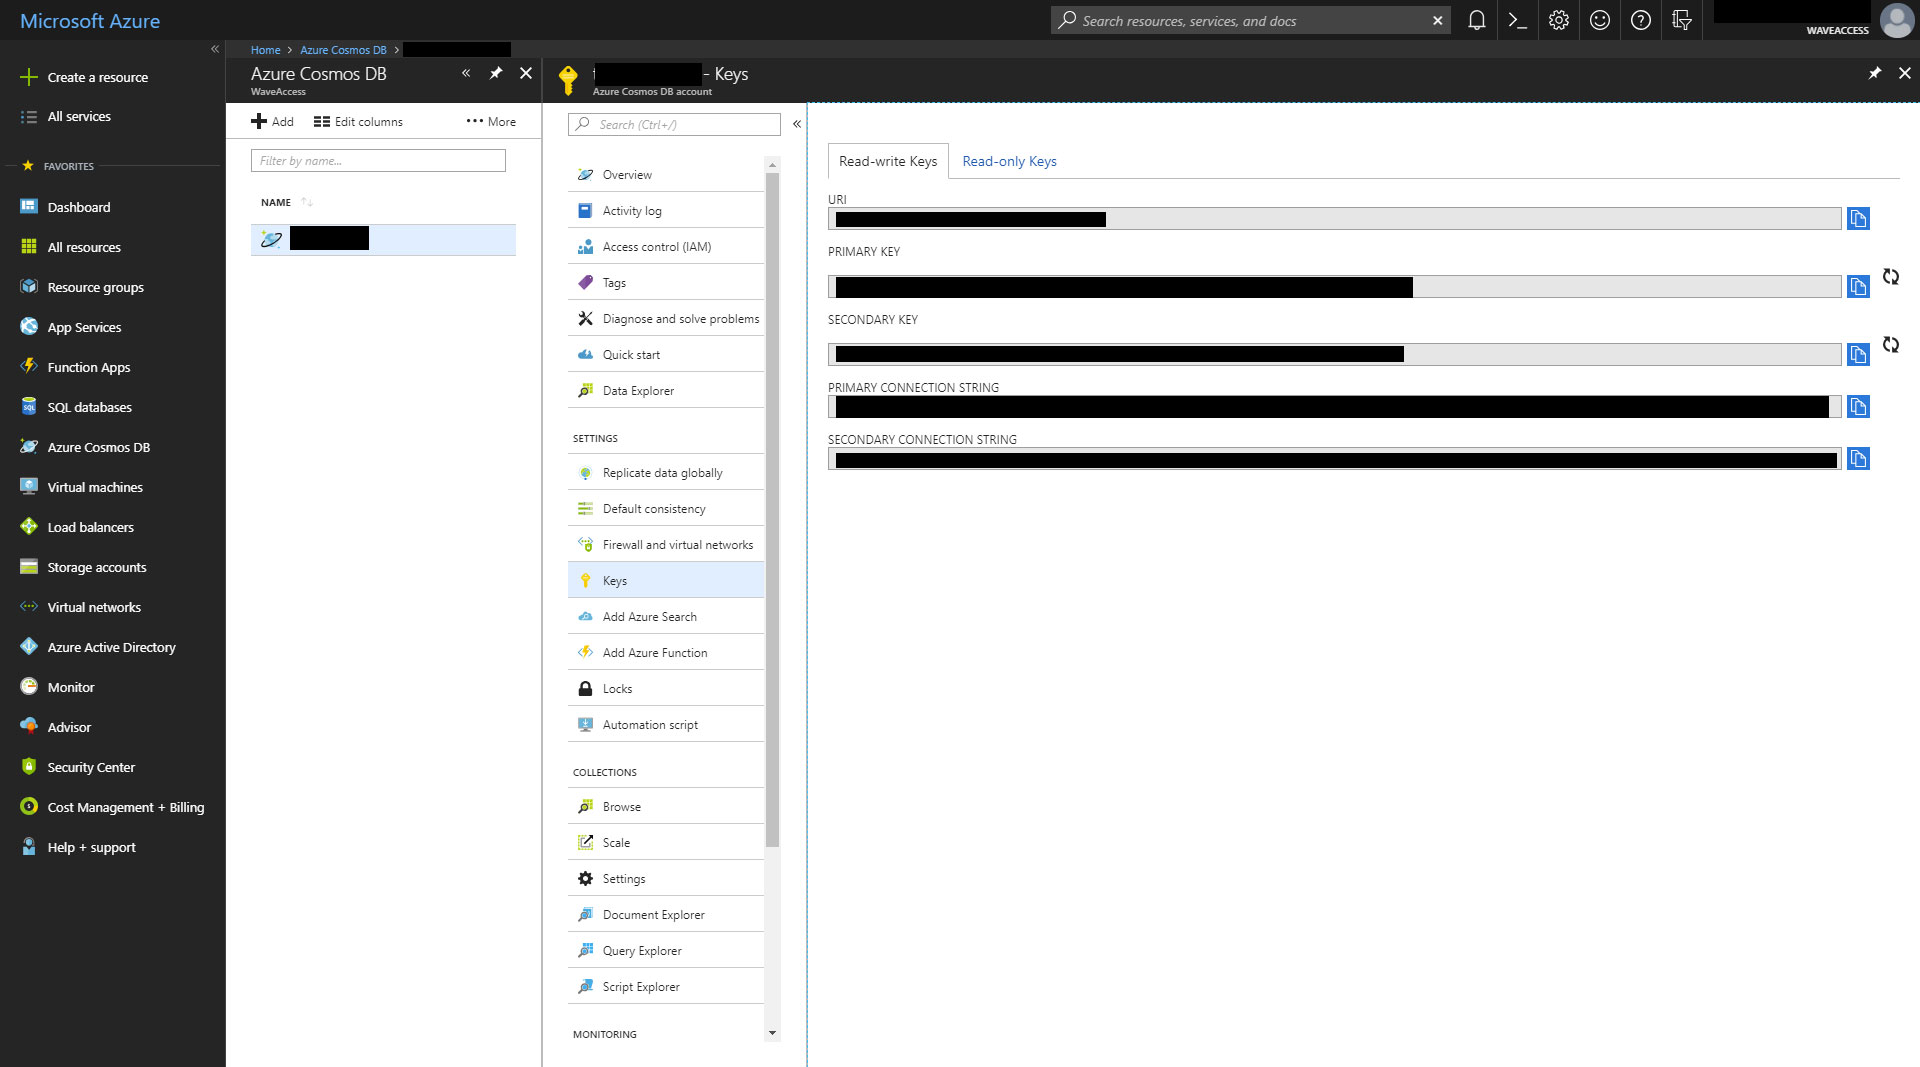 Experience Using Azure Cosmos DB in a Commercial Project